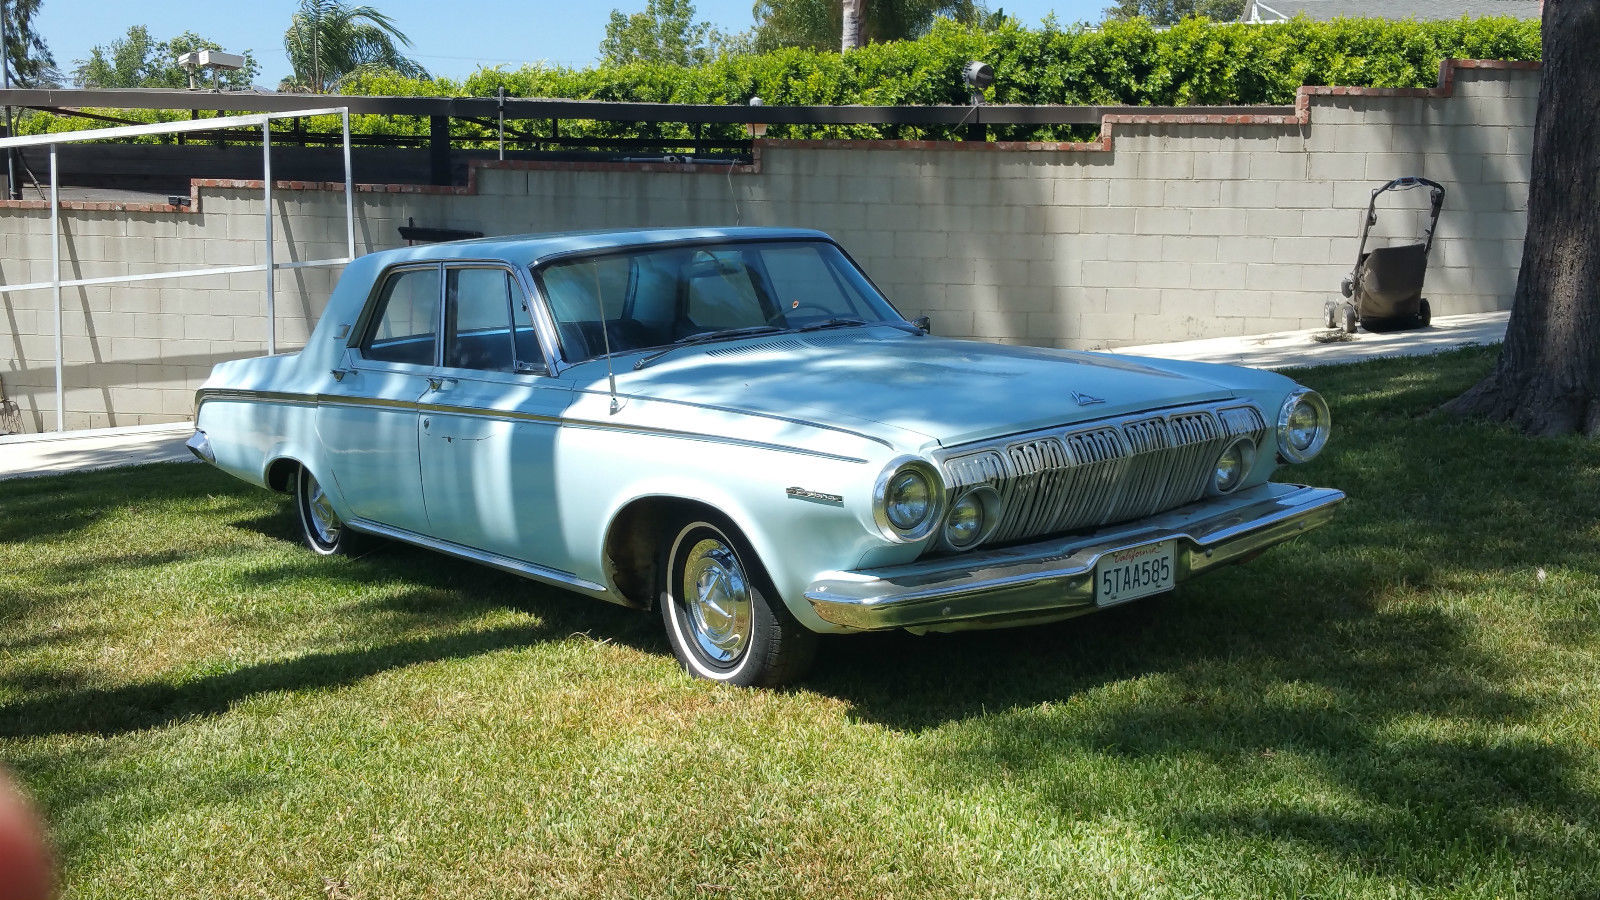 1963 Dodge Polara 4 Door Sedan. U201c